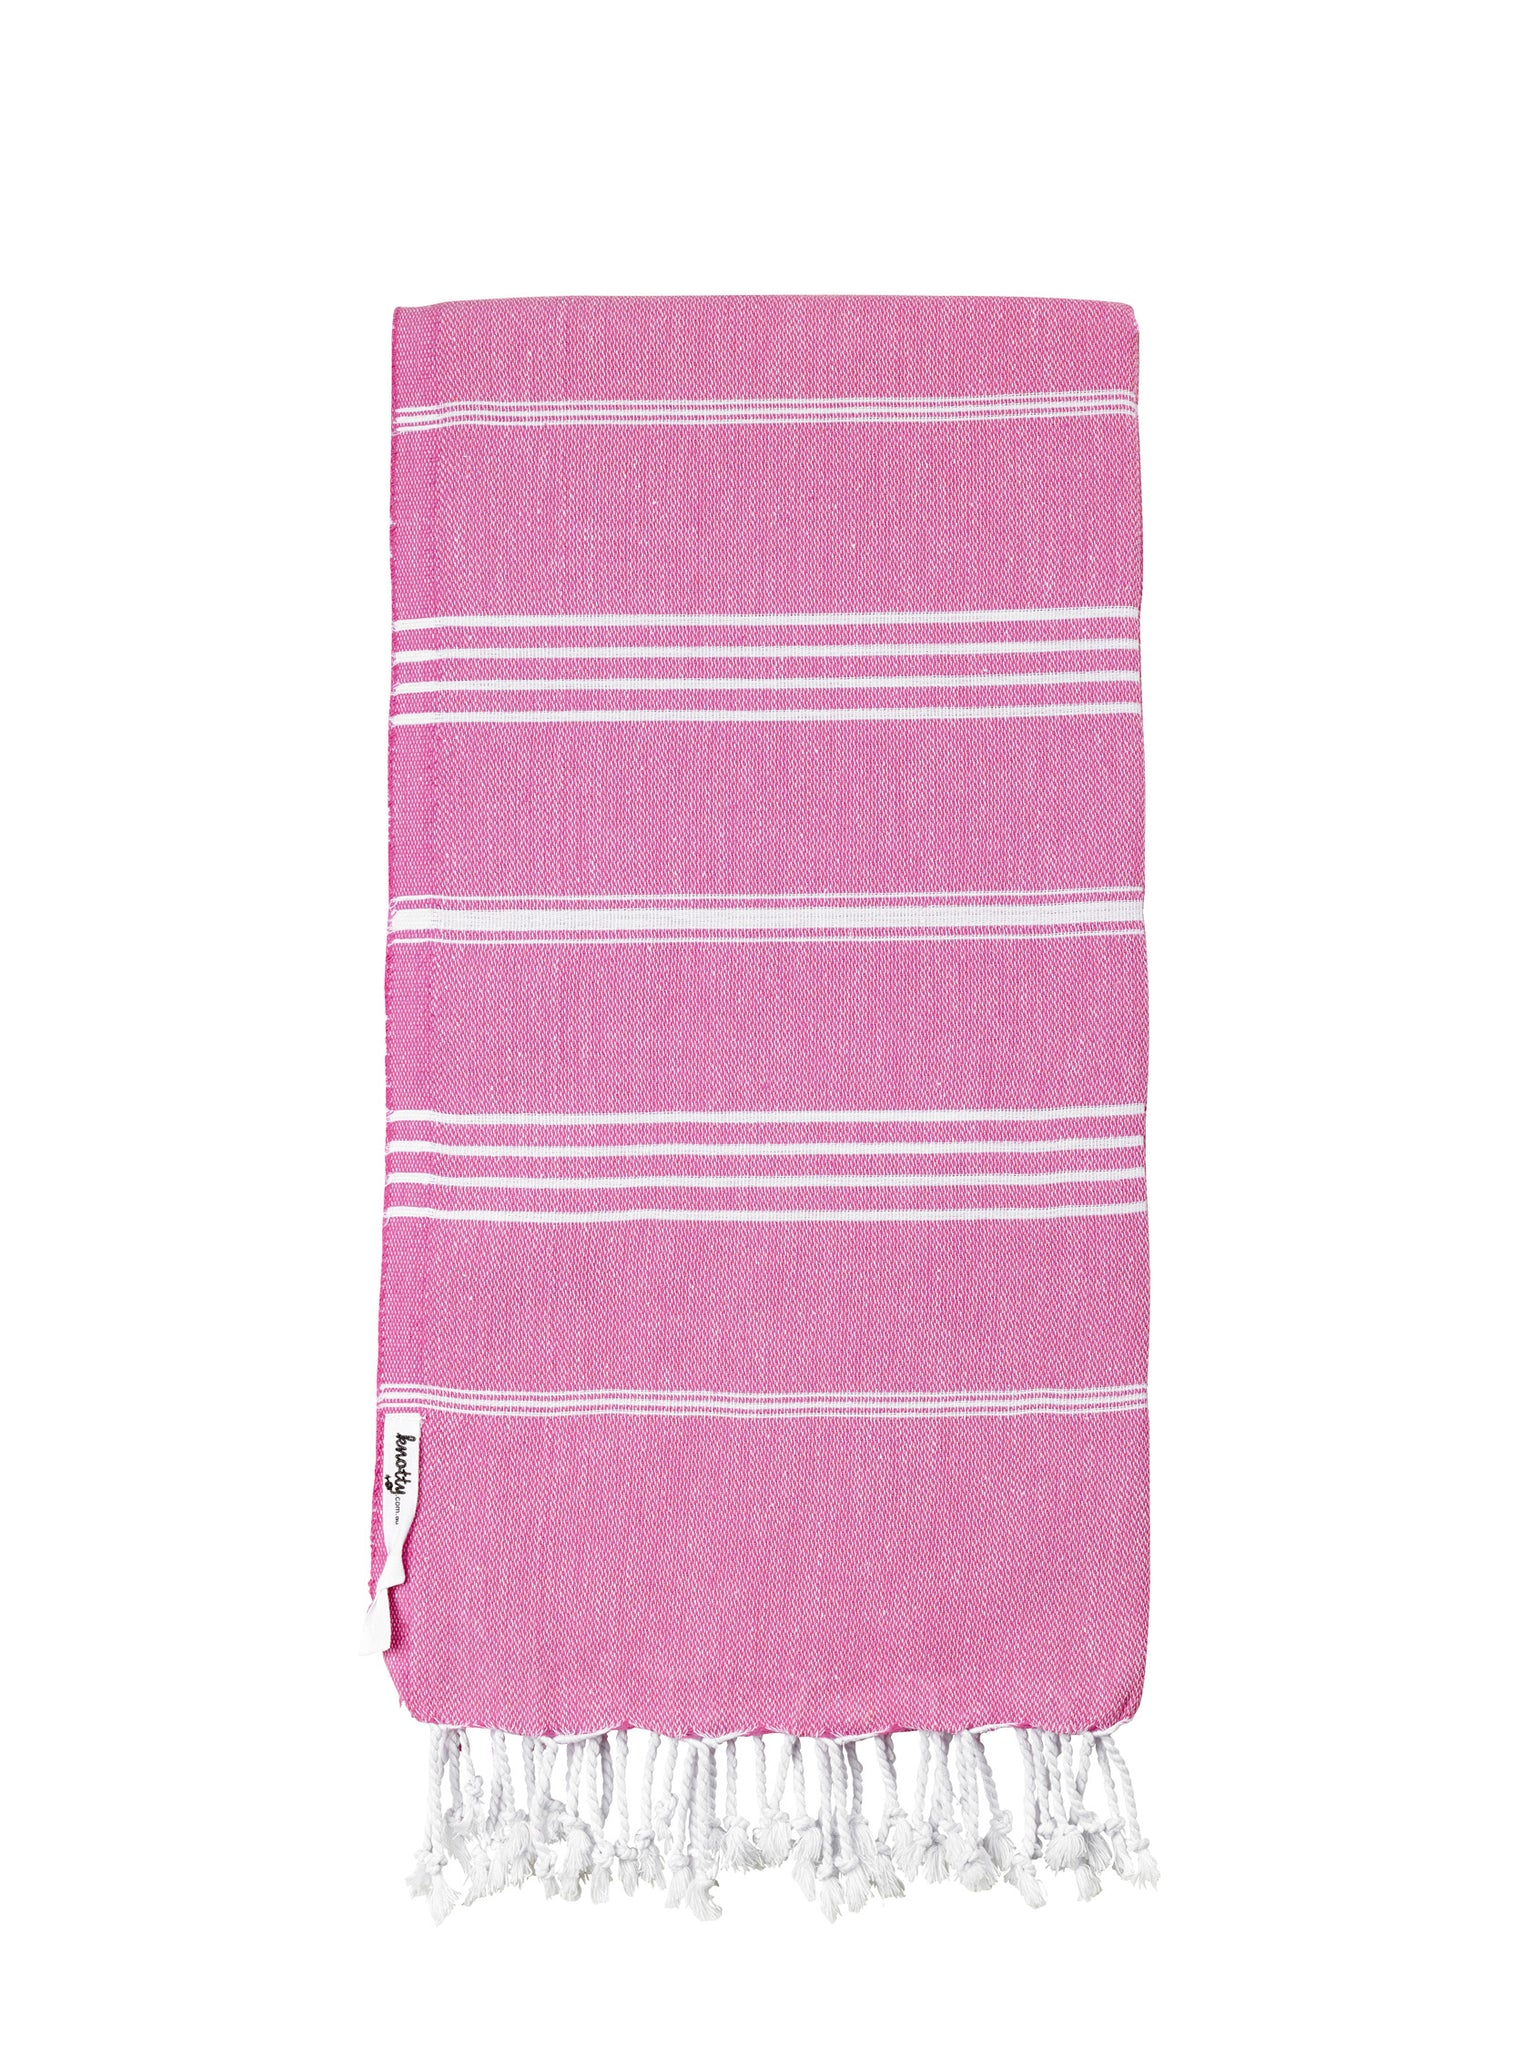 Knotty Towels - Originals - BUBBLEGUM